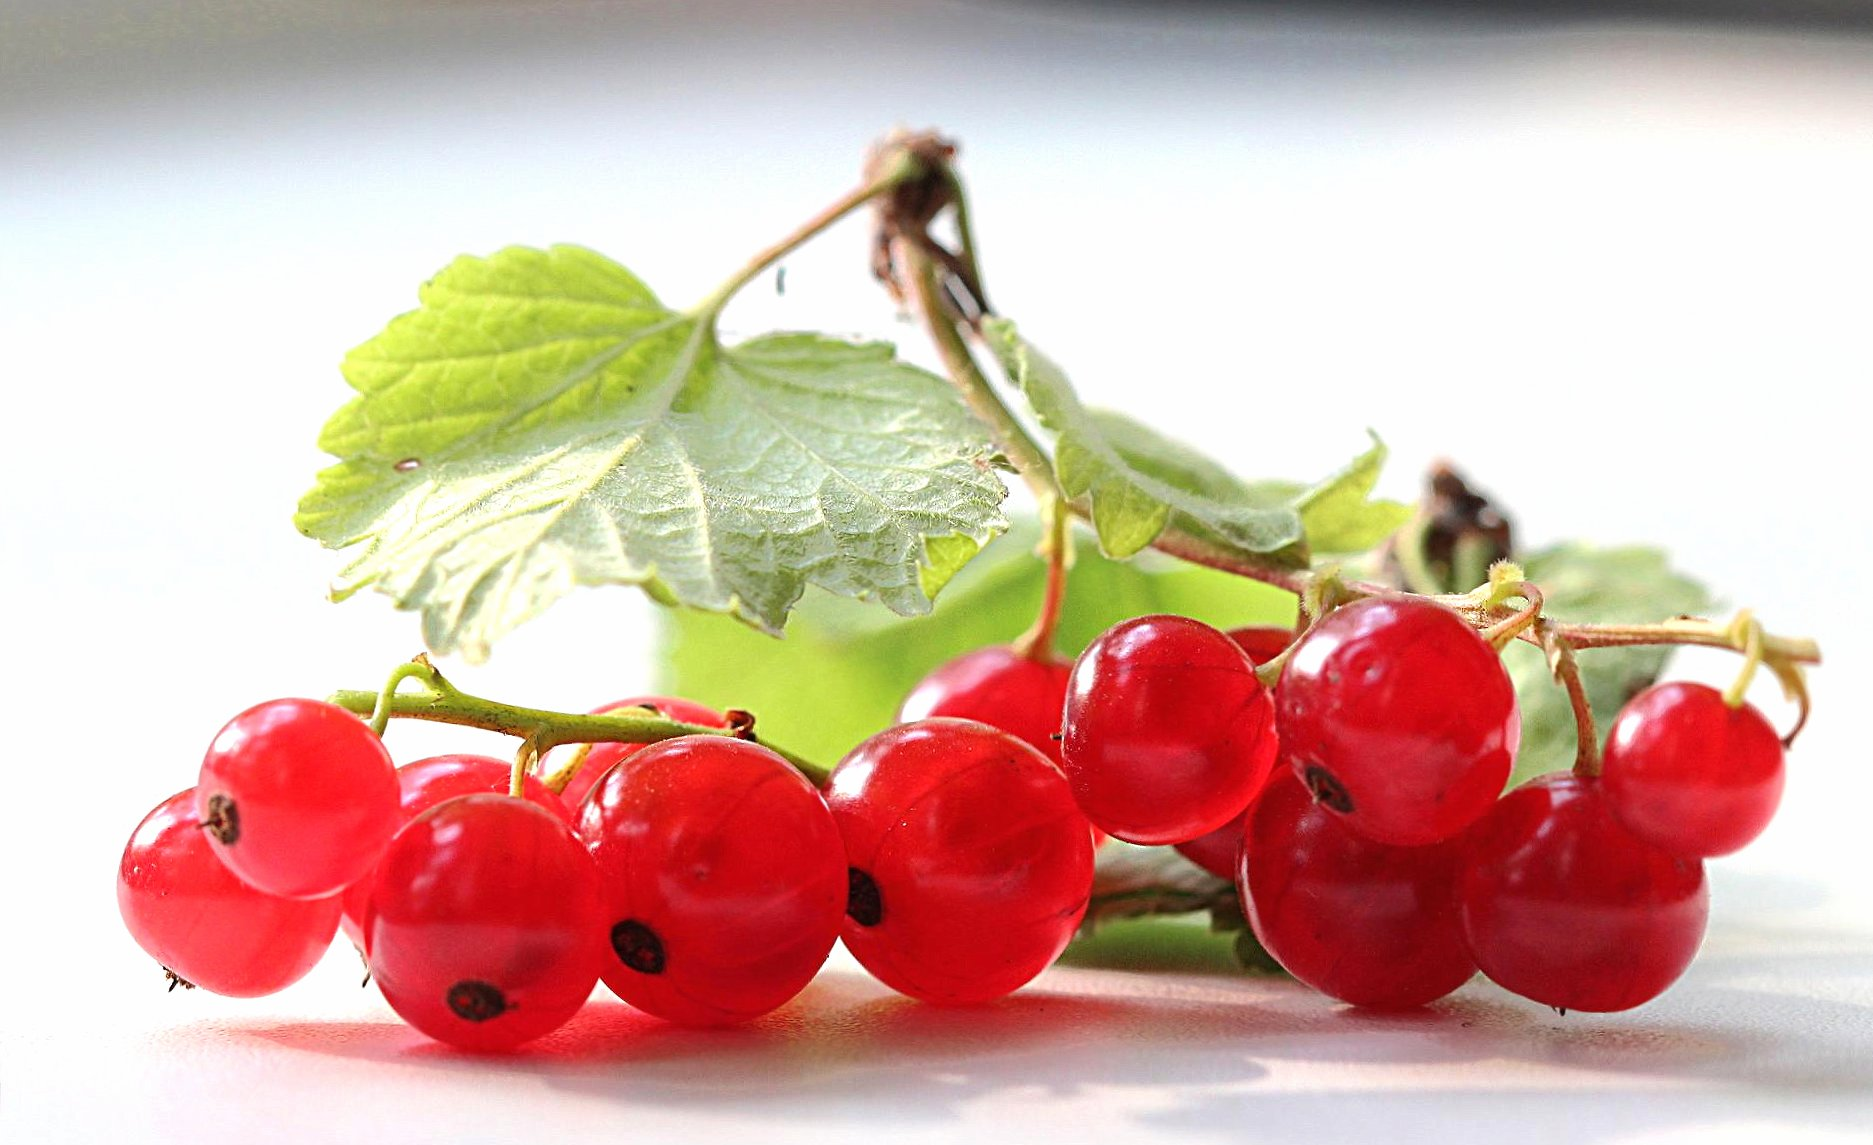 Amazing currant wallpapers HD quality